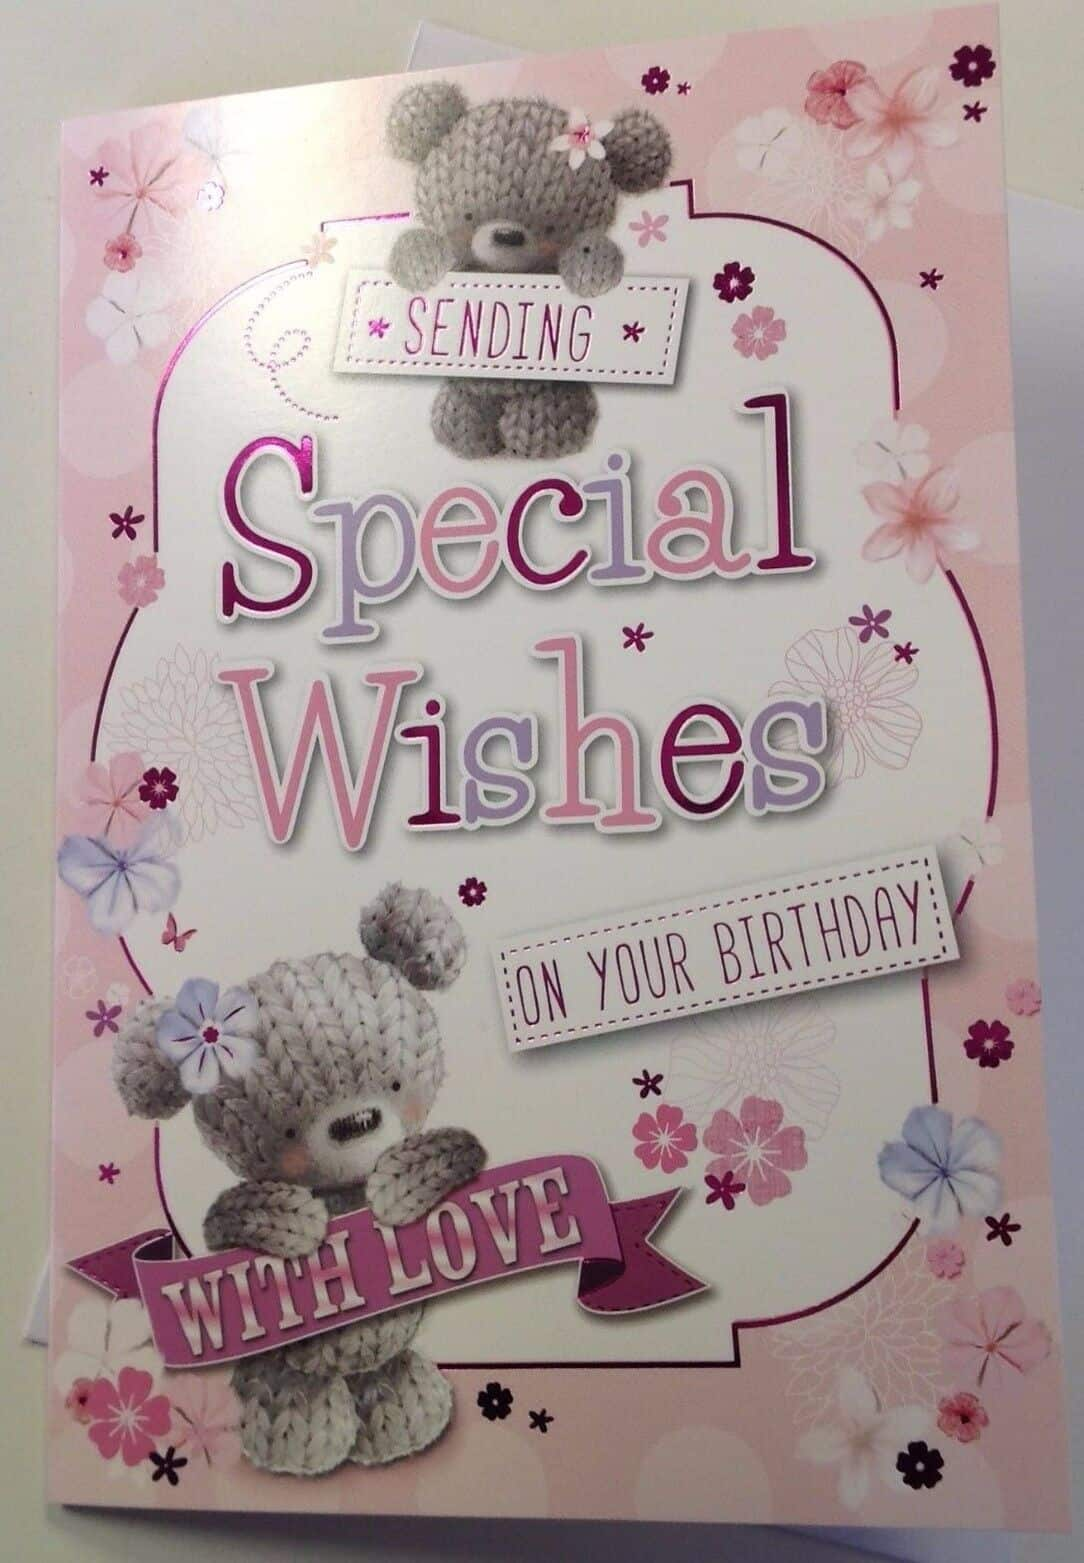 General Birthday Card With Cute Teddy Bears Design